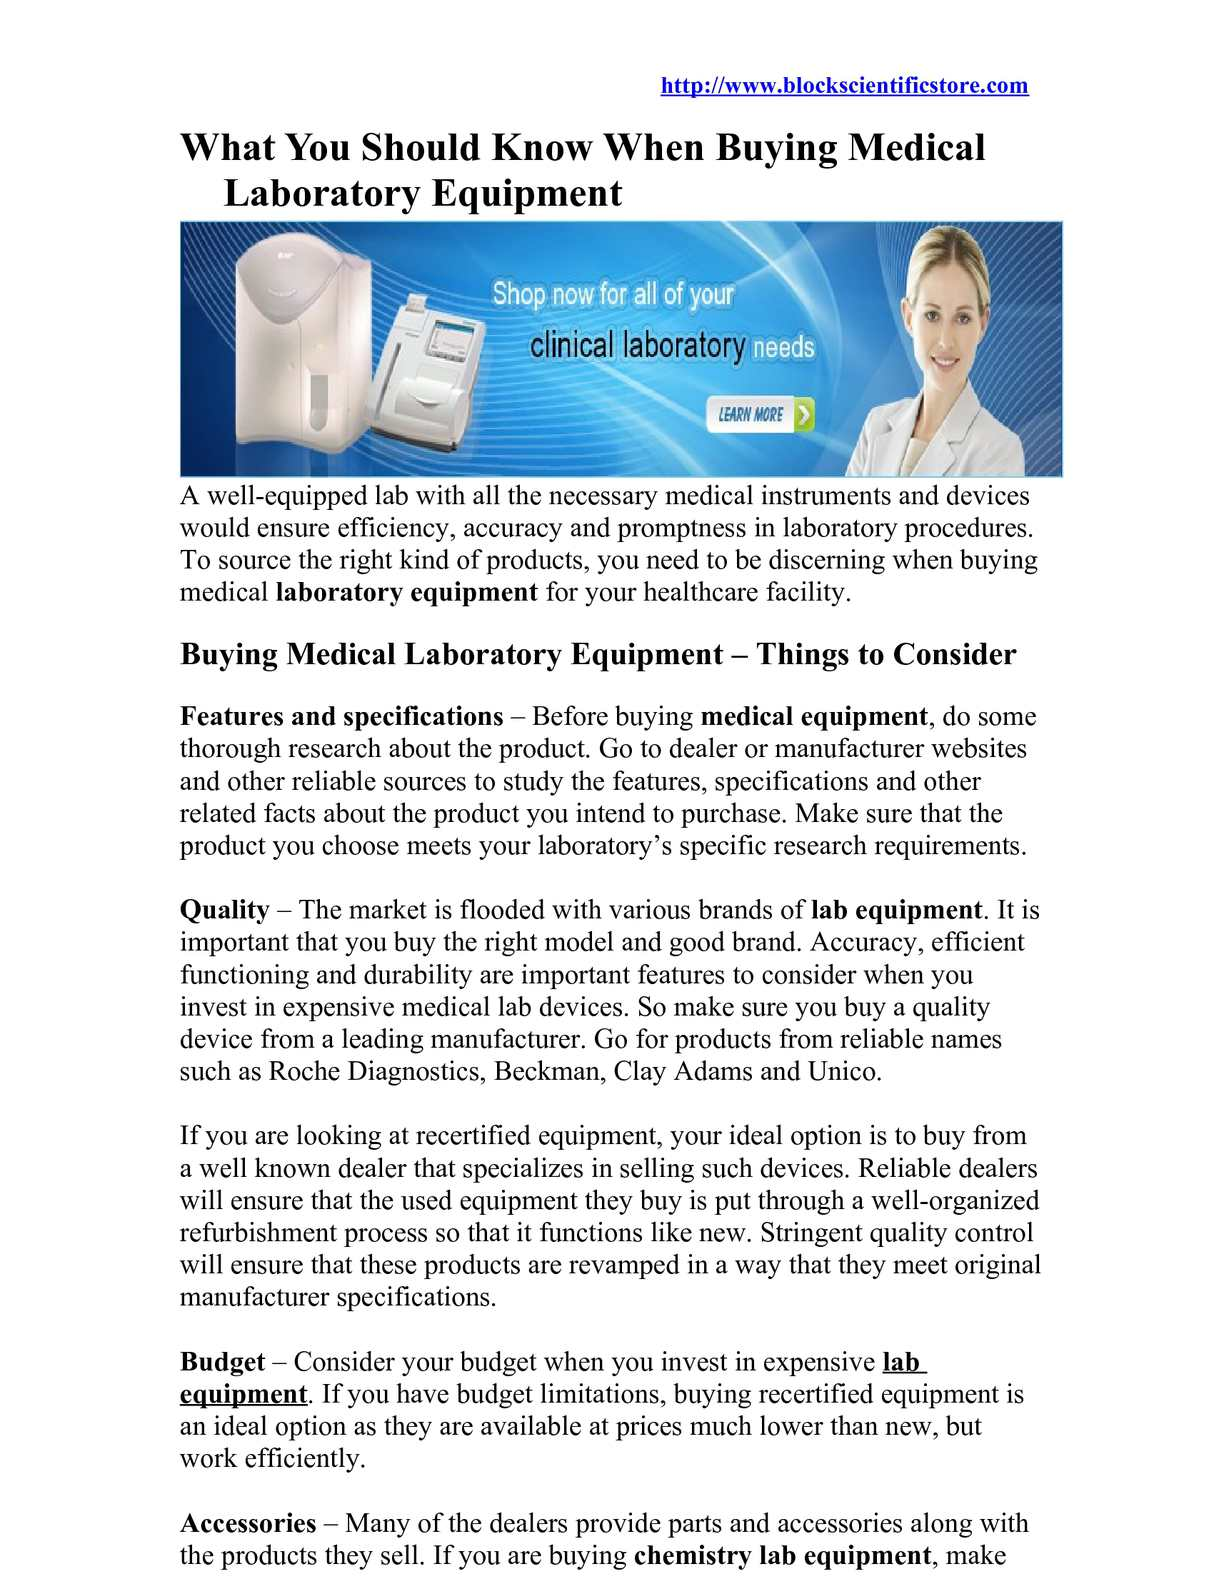 Calaméo - What You Should Know When Buying Medical Laboratory Equipment